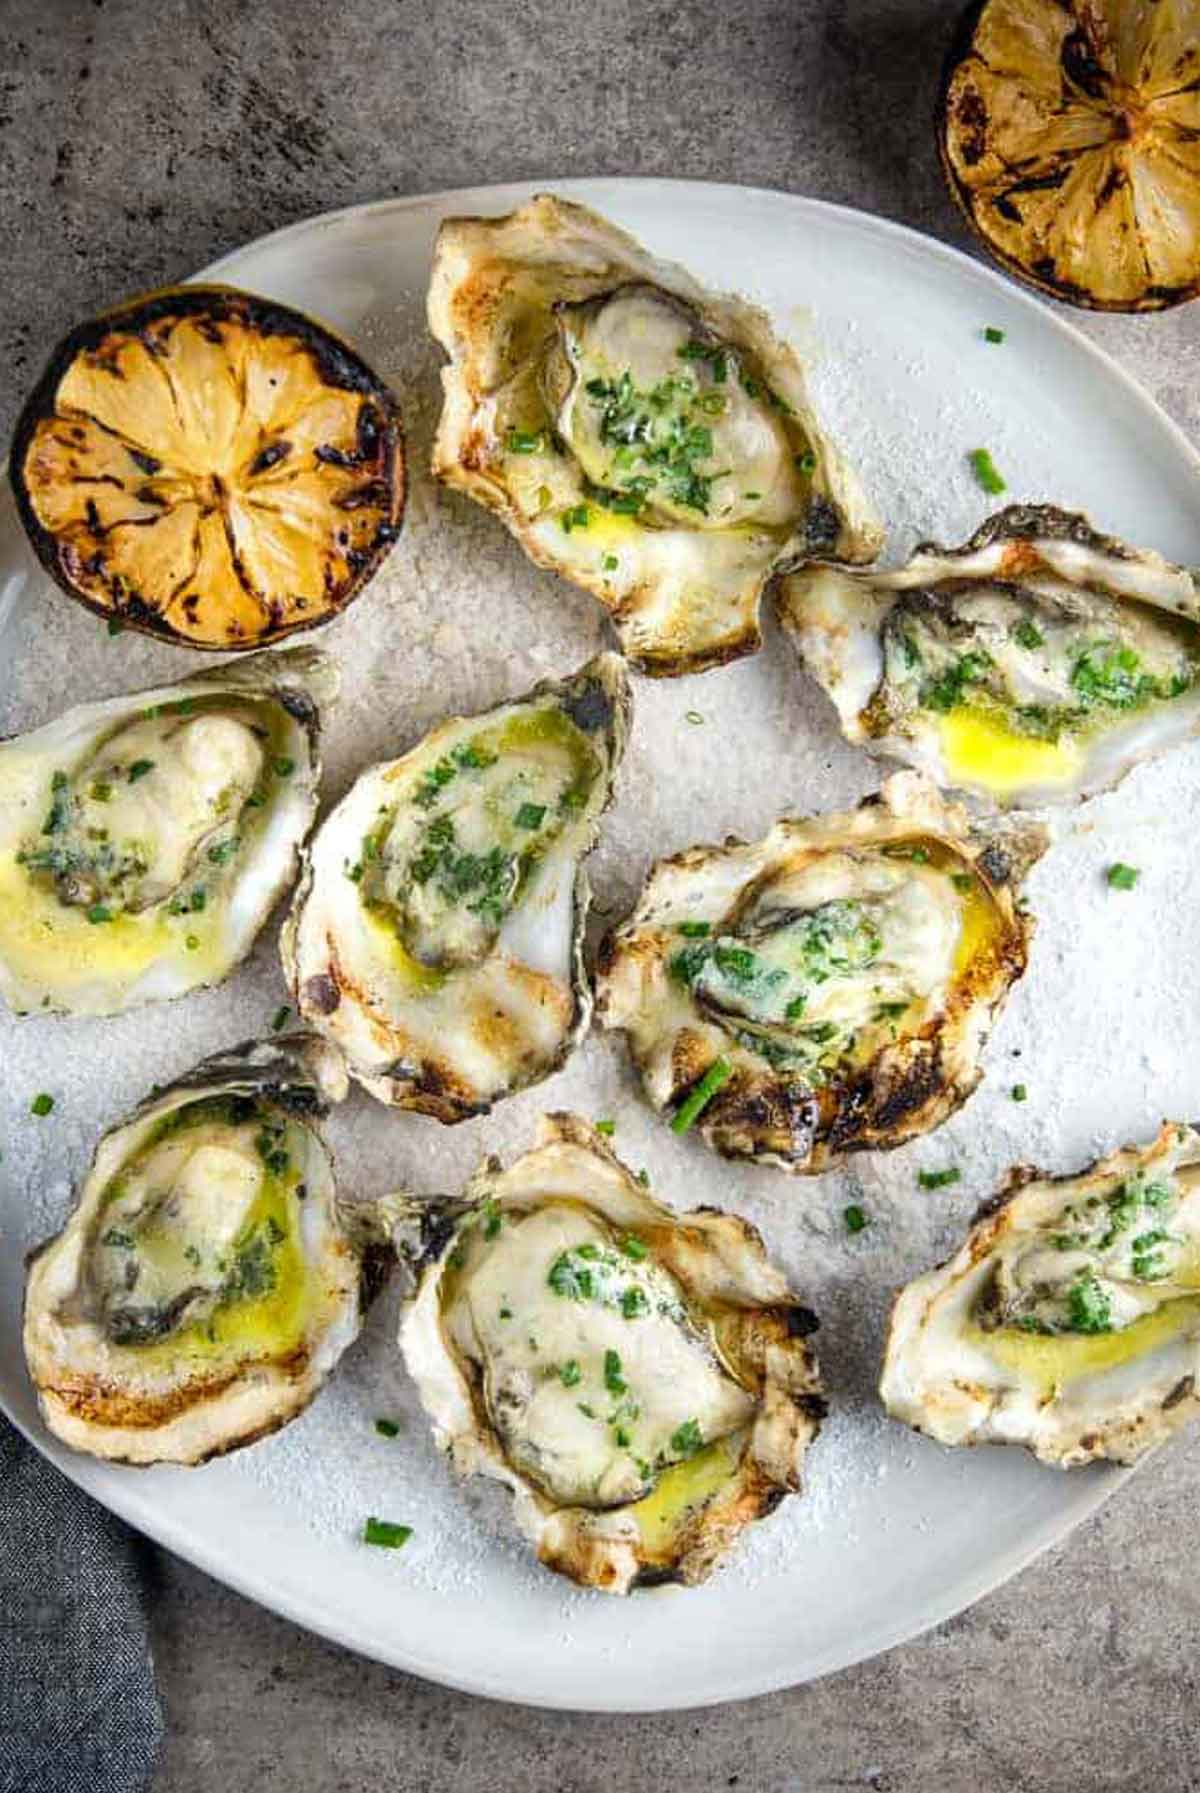 8 grilled oysters on a plate beside a grilled lemon slice.